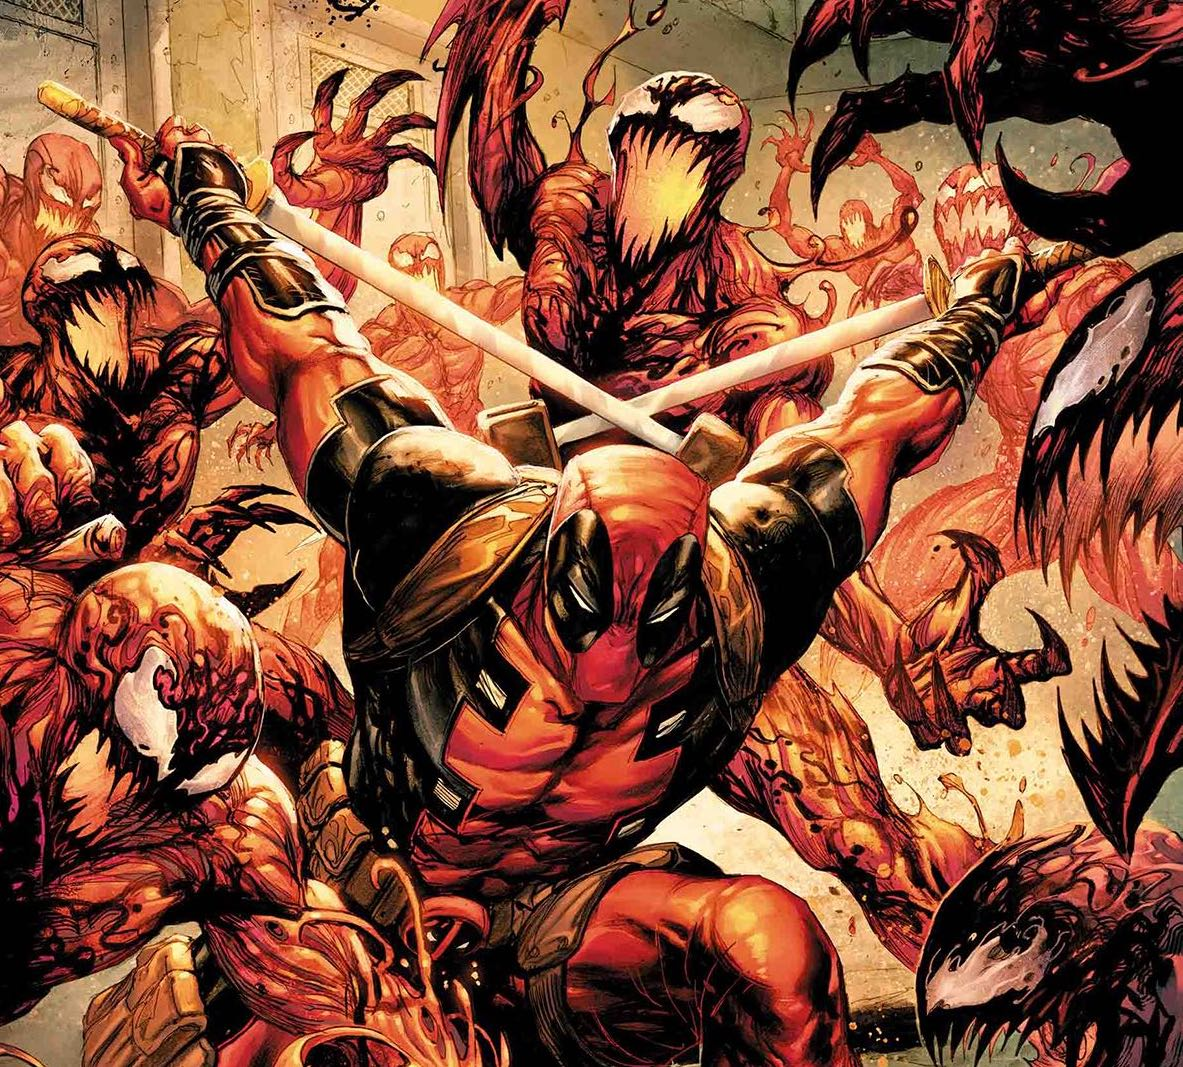 'Absolute Carnage vs. Deadpool' #1 review: A great dark comedy